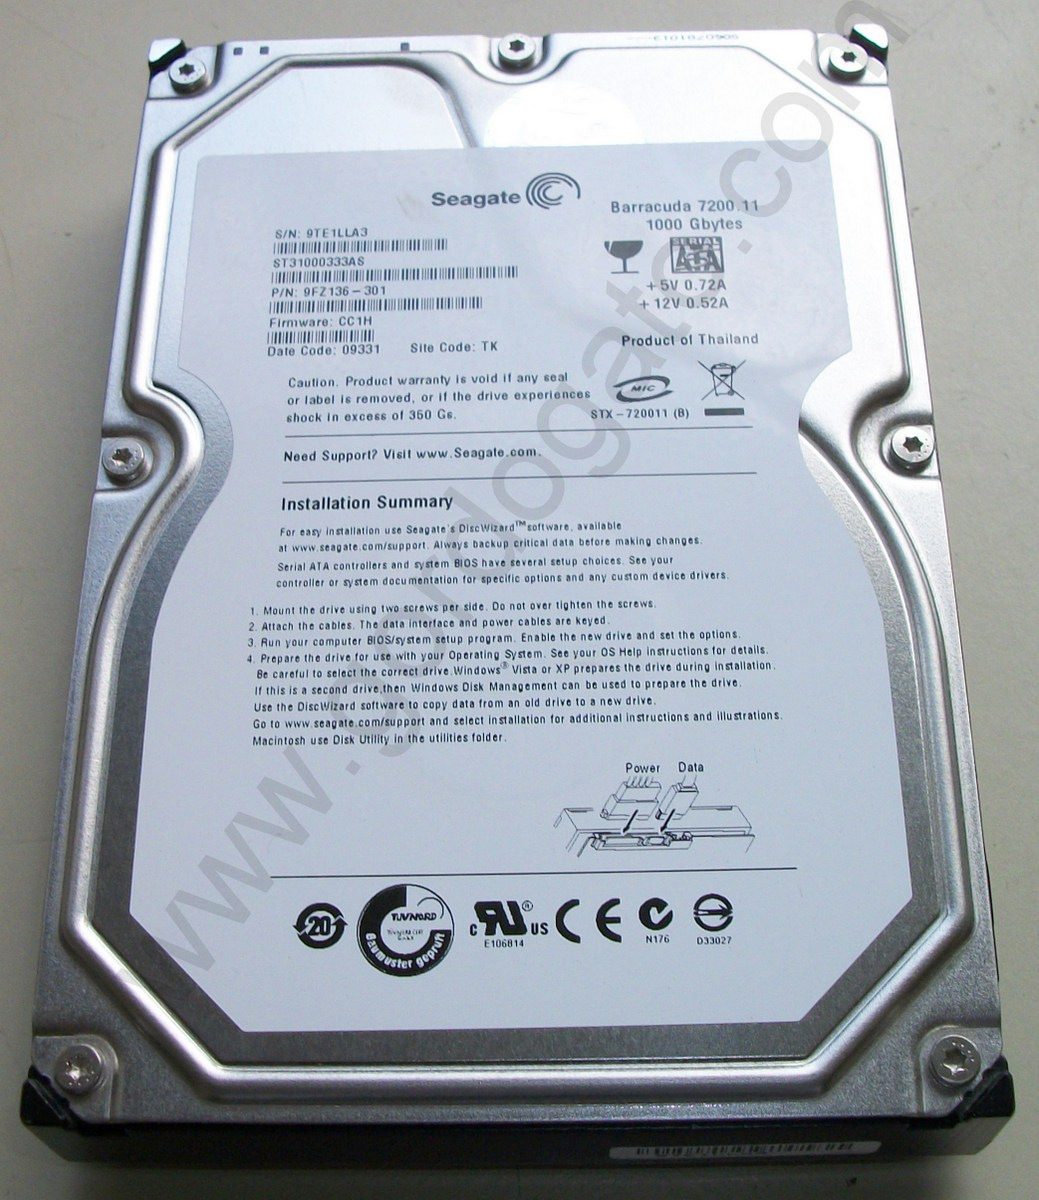 Bad Sectors Seagate 1tb 35 Sata Desktop Hard Disk St31000333 Baracuda Gordogatos Interesting Stuff